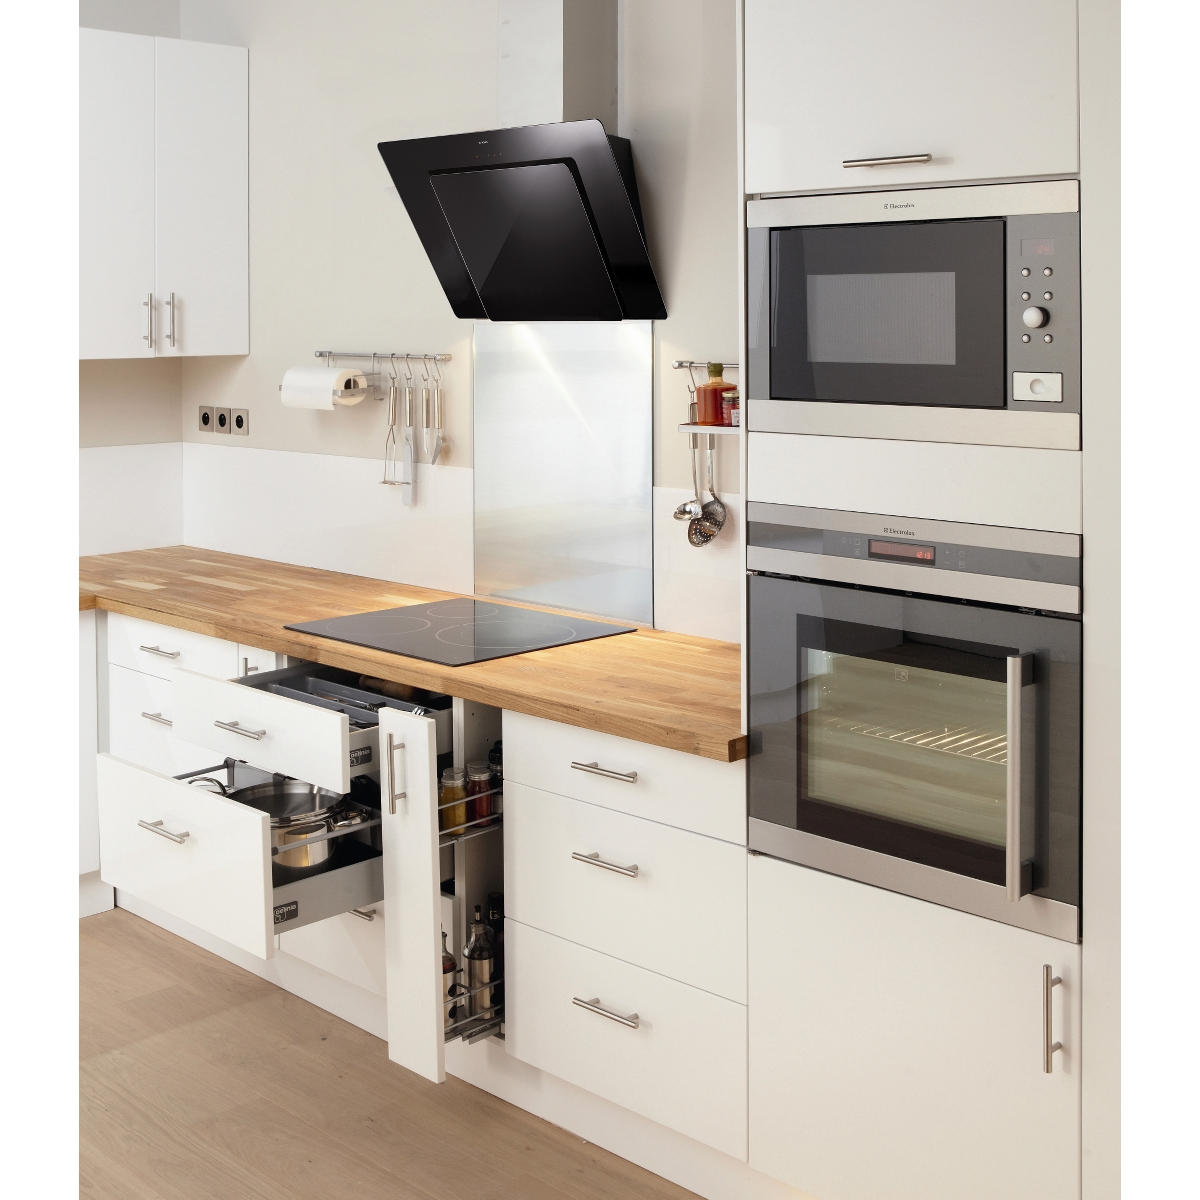 Kitchenette Leroy Merlin Cucina Delinia Galaxy Prezzi E Offerte Online In 2019 Home Decor